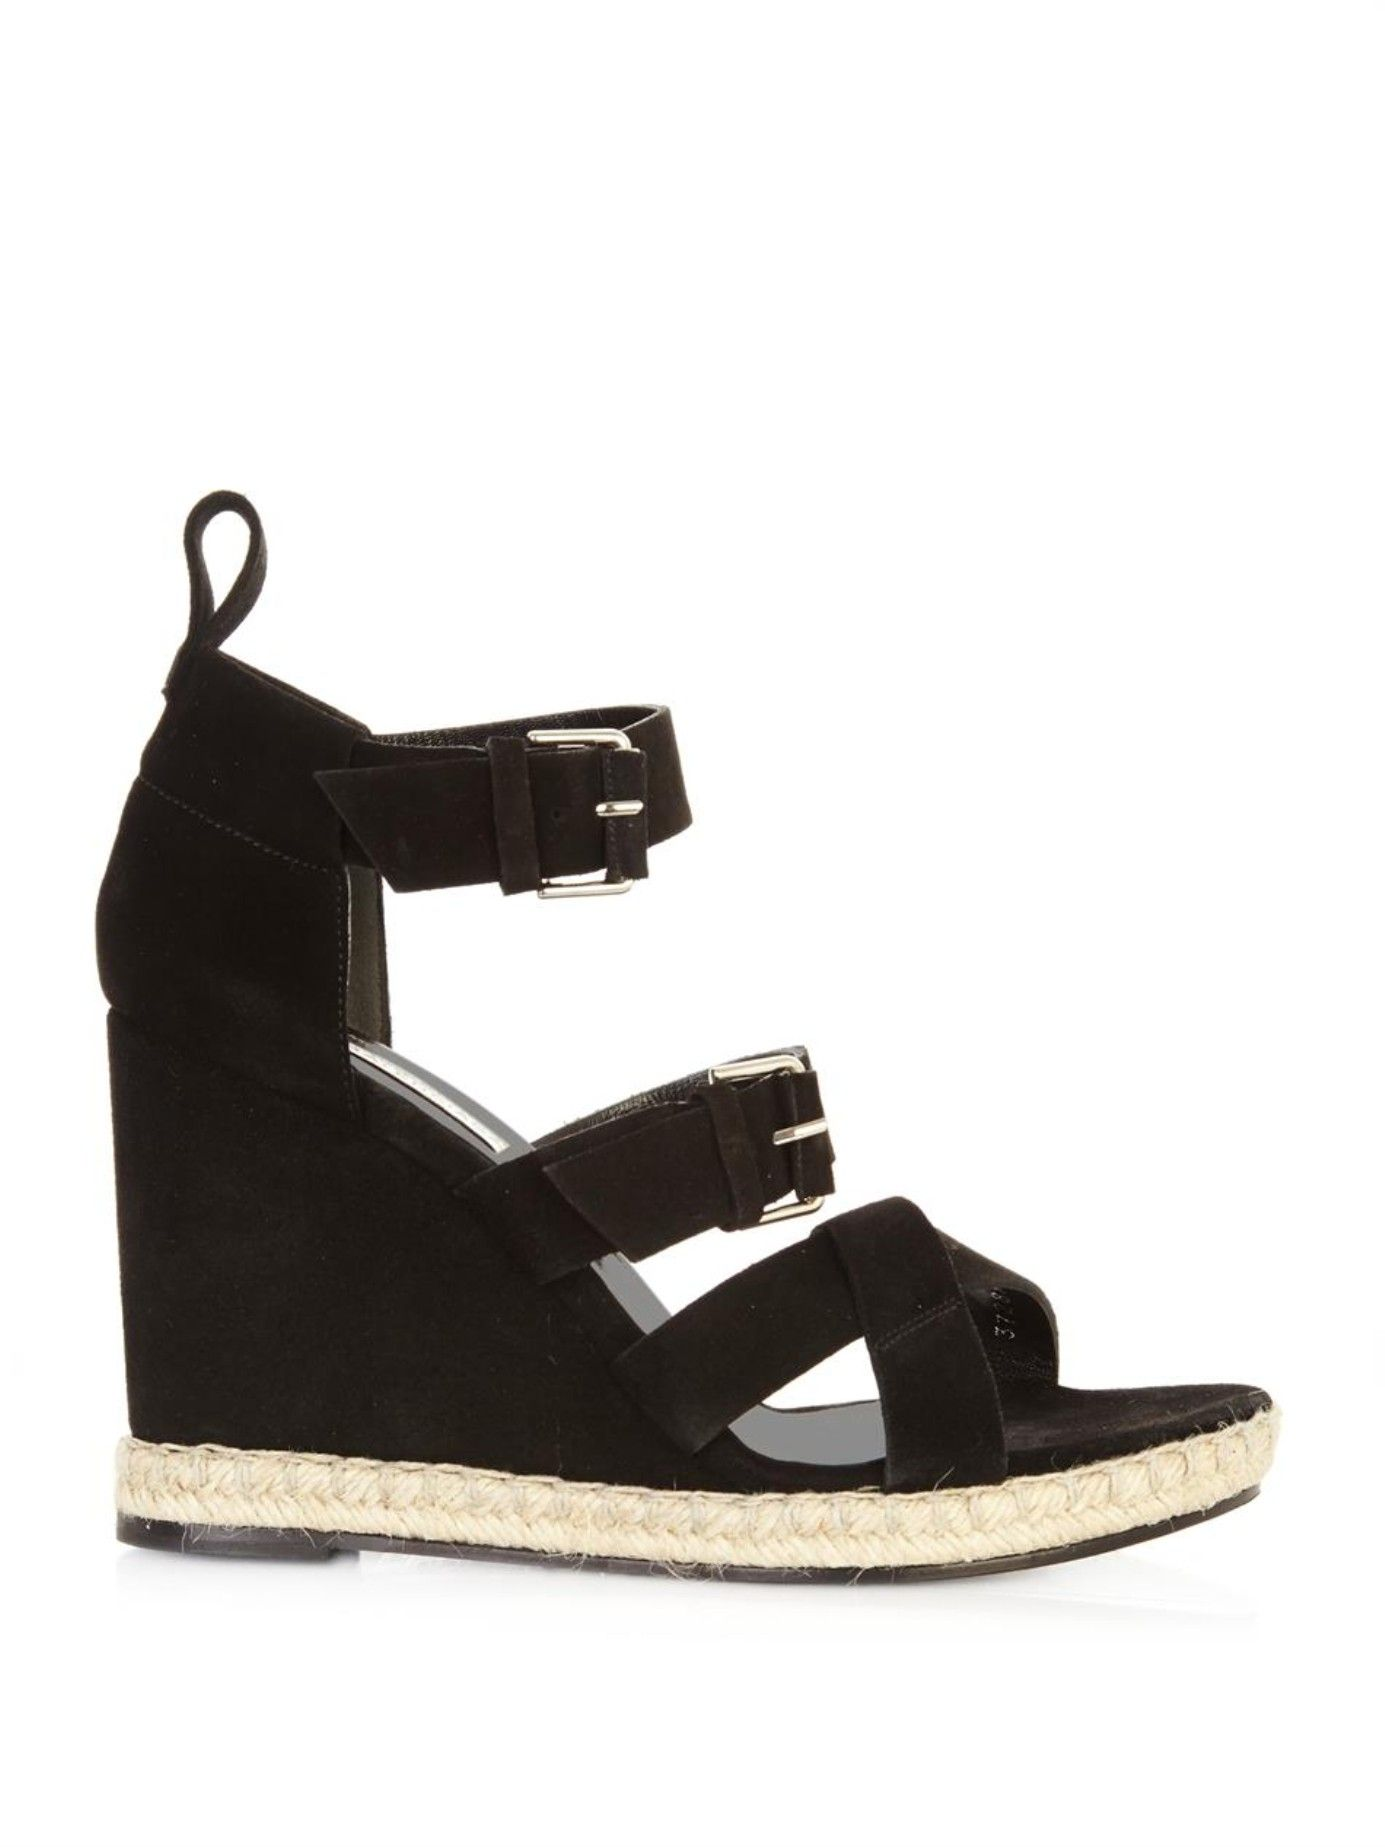 Balenciaga Multistrap Suede Wedges outlet for sale cheap for sale discount great deals SE4kxBd